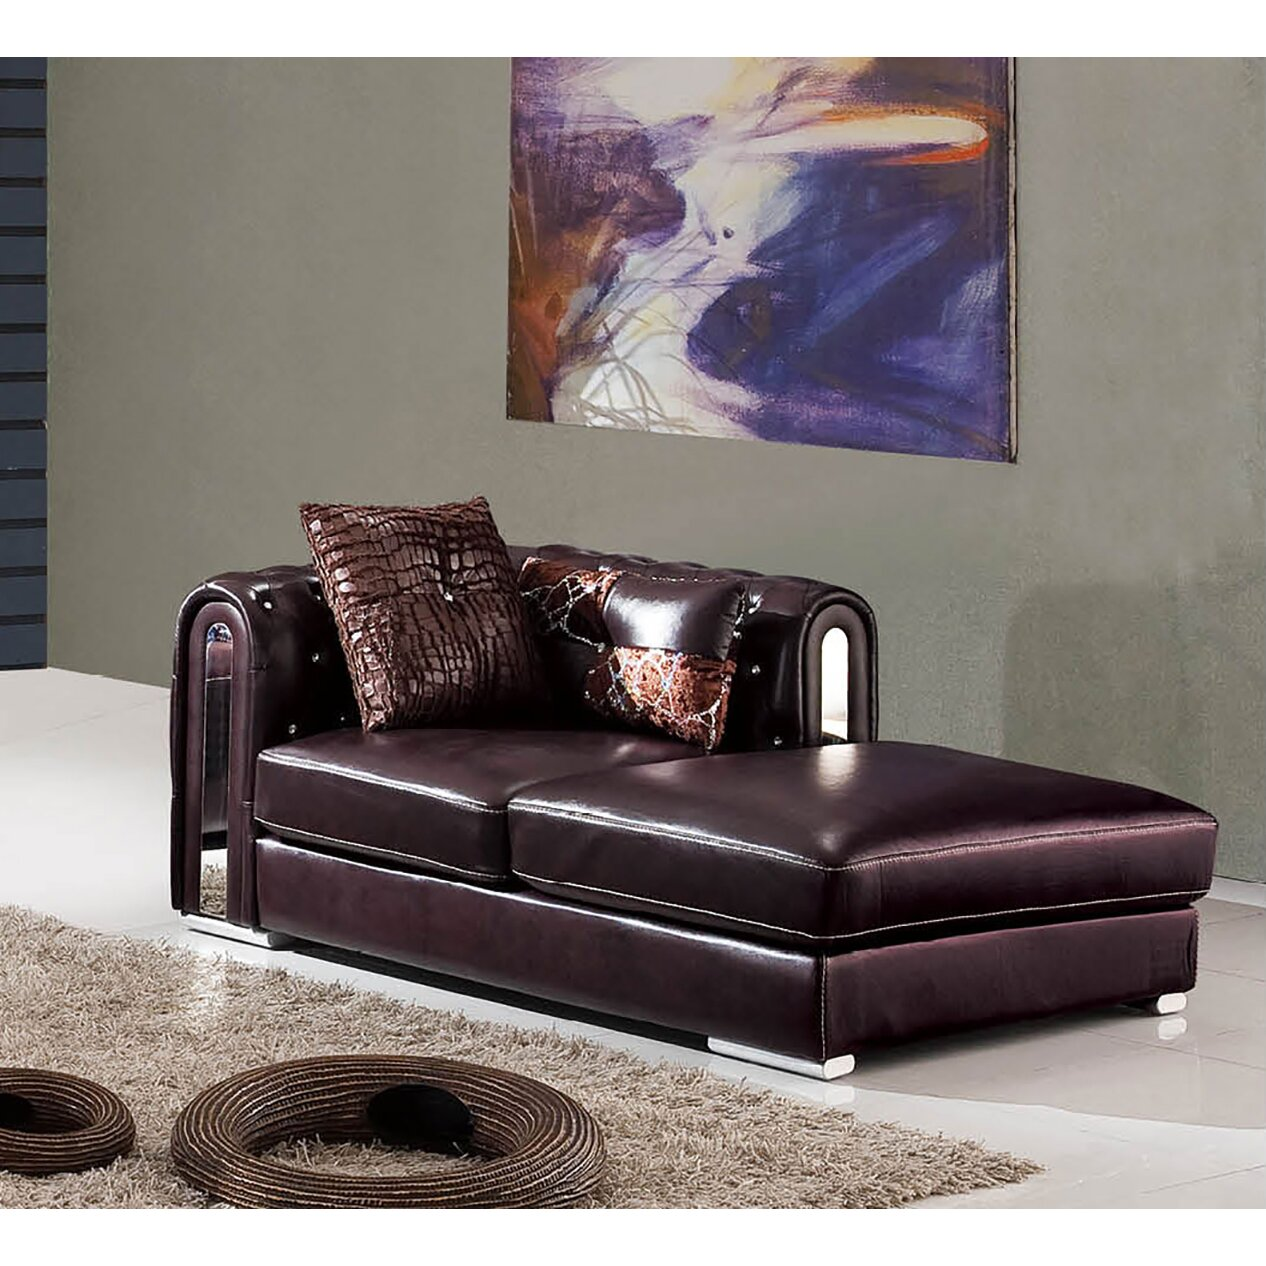 Nocidesign chaise lounge wayfair for Burgundy leather chaise